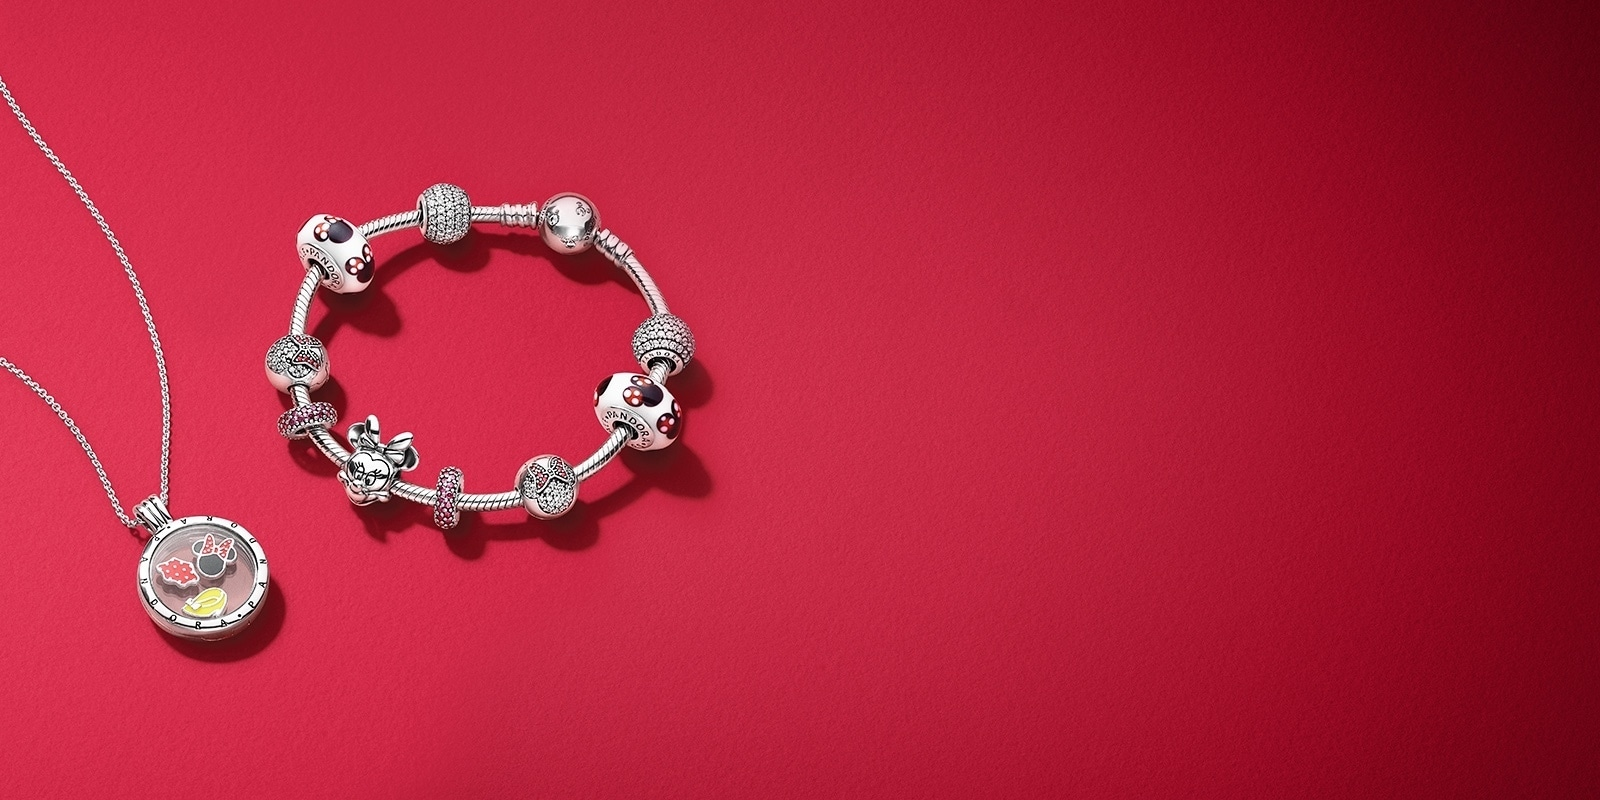 The Valentines Disney Pandora collection